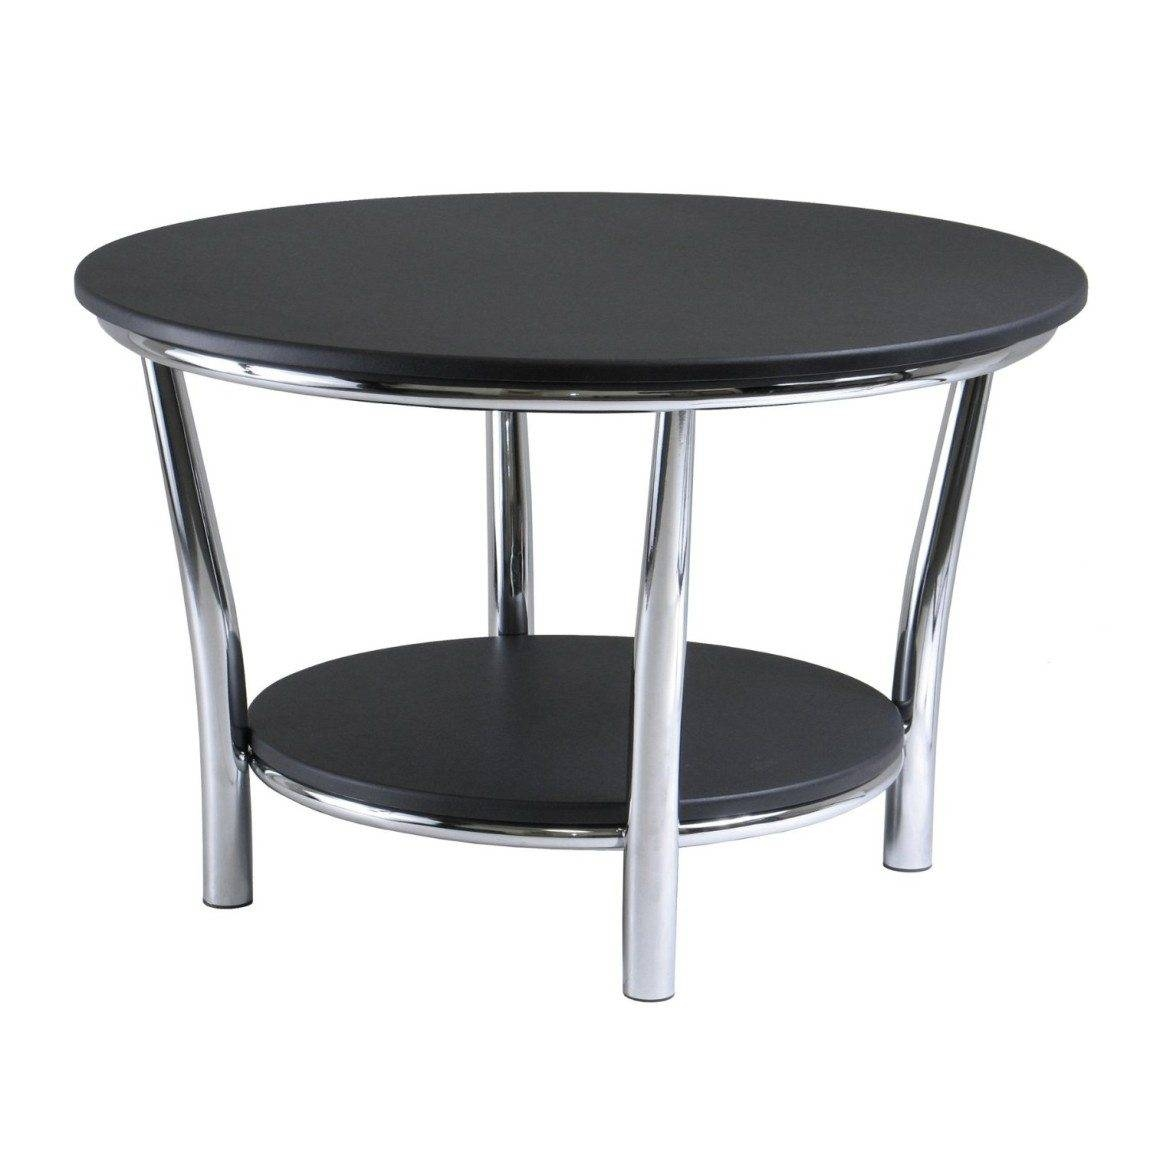 10 Budget Friendly Chic Coffee Tables Under $80 | Arts And Classy inside Round Chrome Coffee Tables (Image 1 of 30)